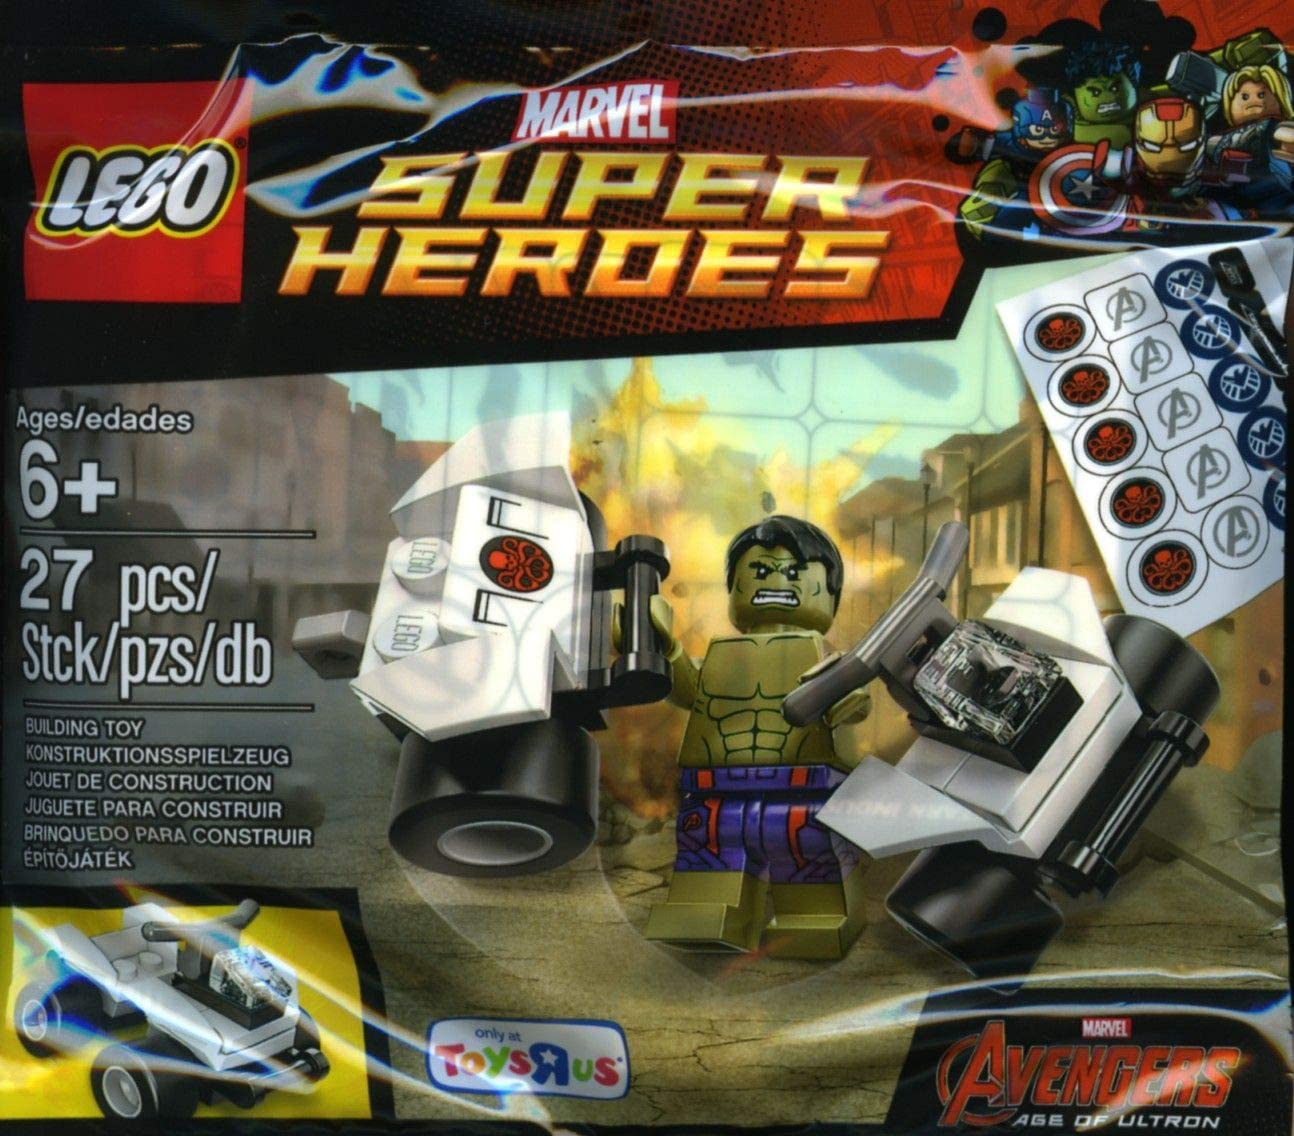 LEGO, Marvel Super Heroes, The Hulk Exclusive Minifigure Bagged